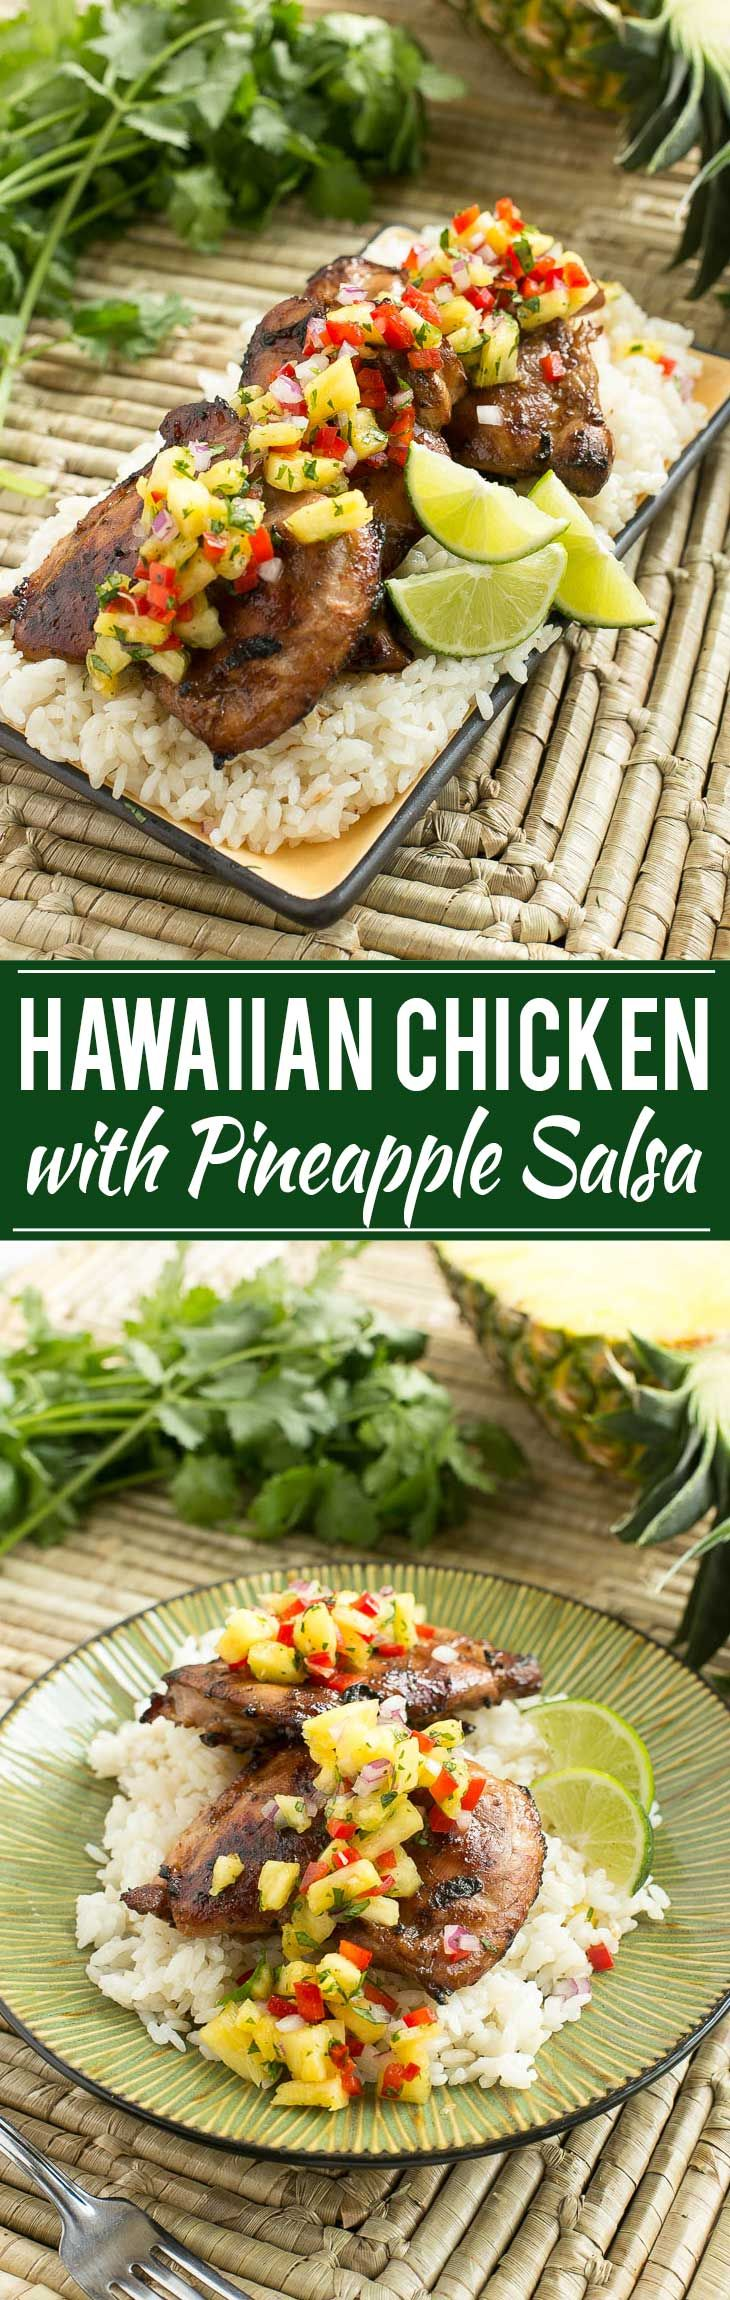 This recipe for Hawaiian grilled chicken is chicken thighs that are flavored with a coconut marinade, grilled to perfection & topped with…